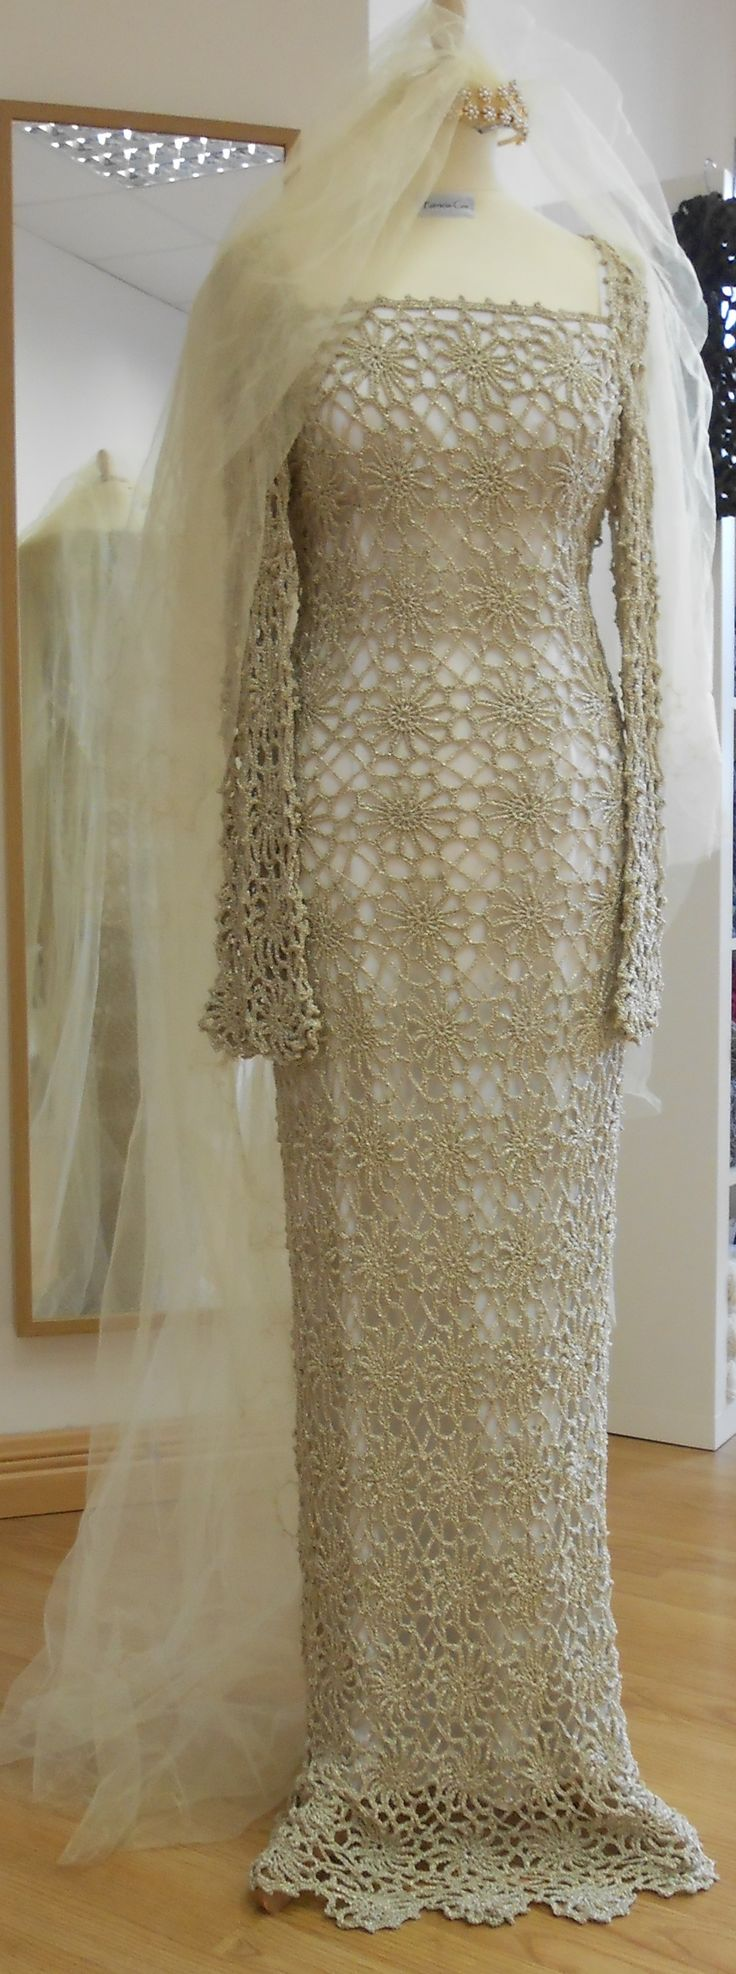 ♥ DIY... Inspiring Crochet Idea ♥ Gorgeous Beautiful Crochet Wedding Dress.